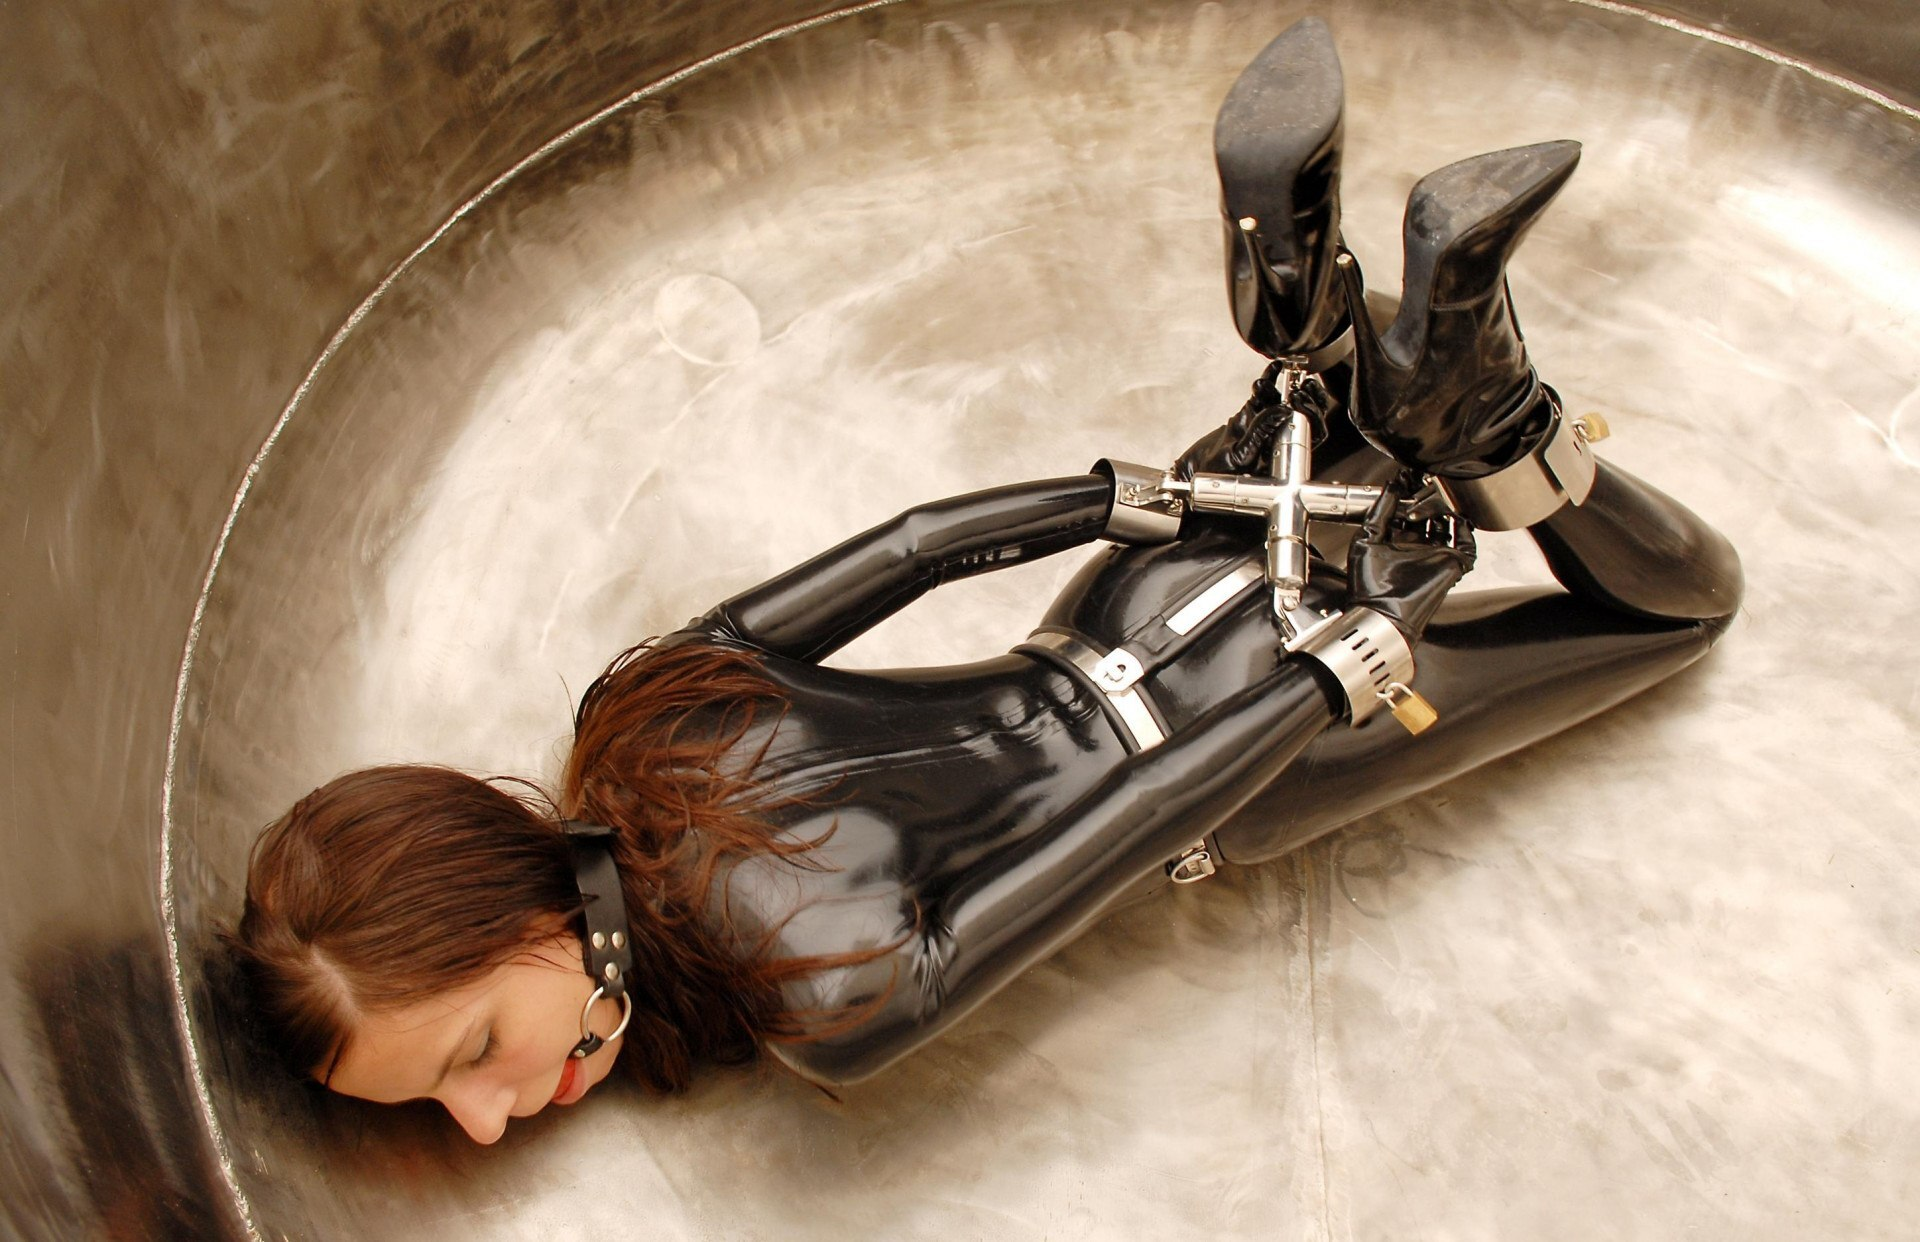 Try Edging With Young Girls Indulging Into BDSM On Live Cams